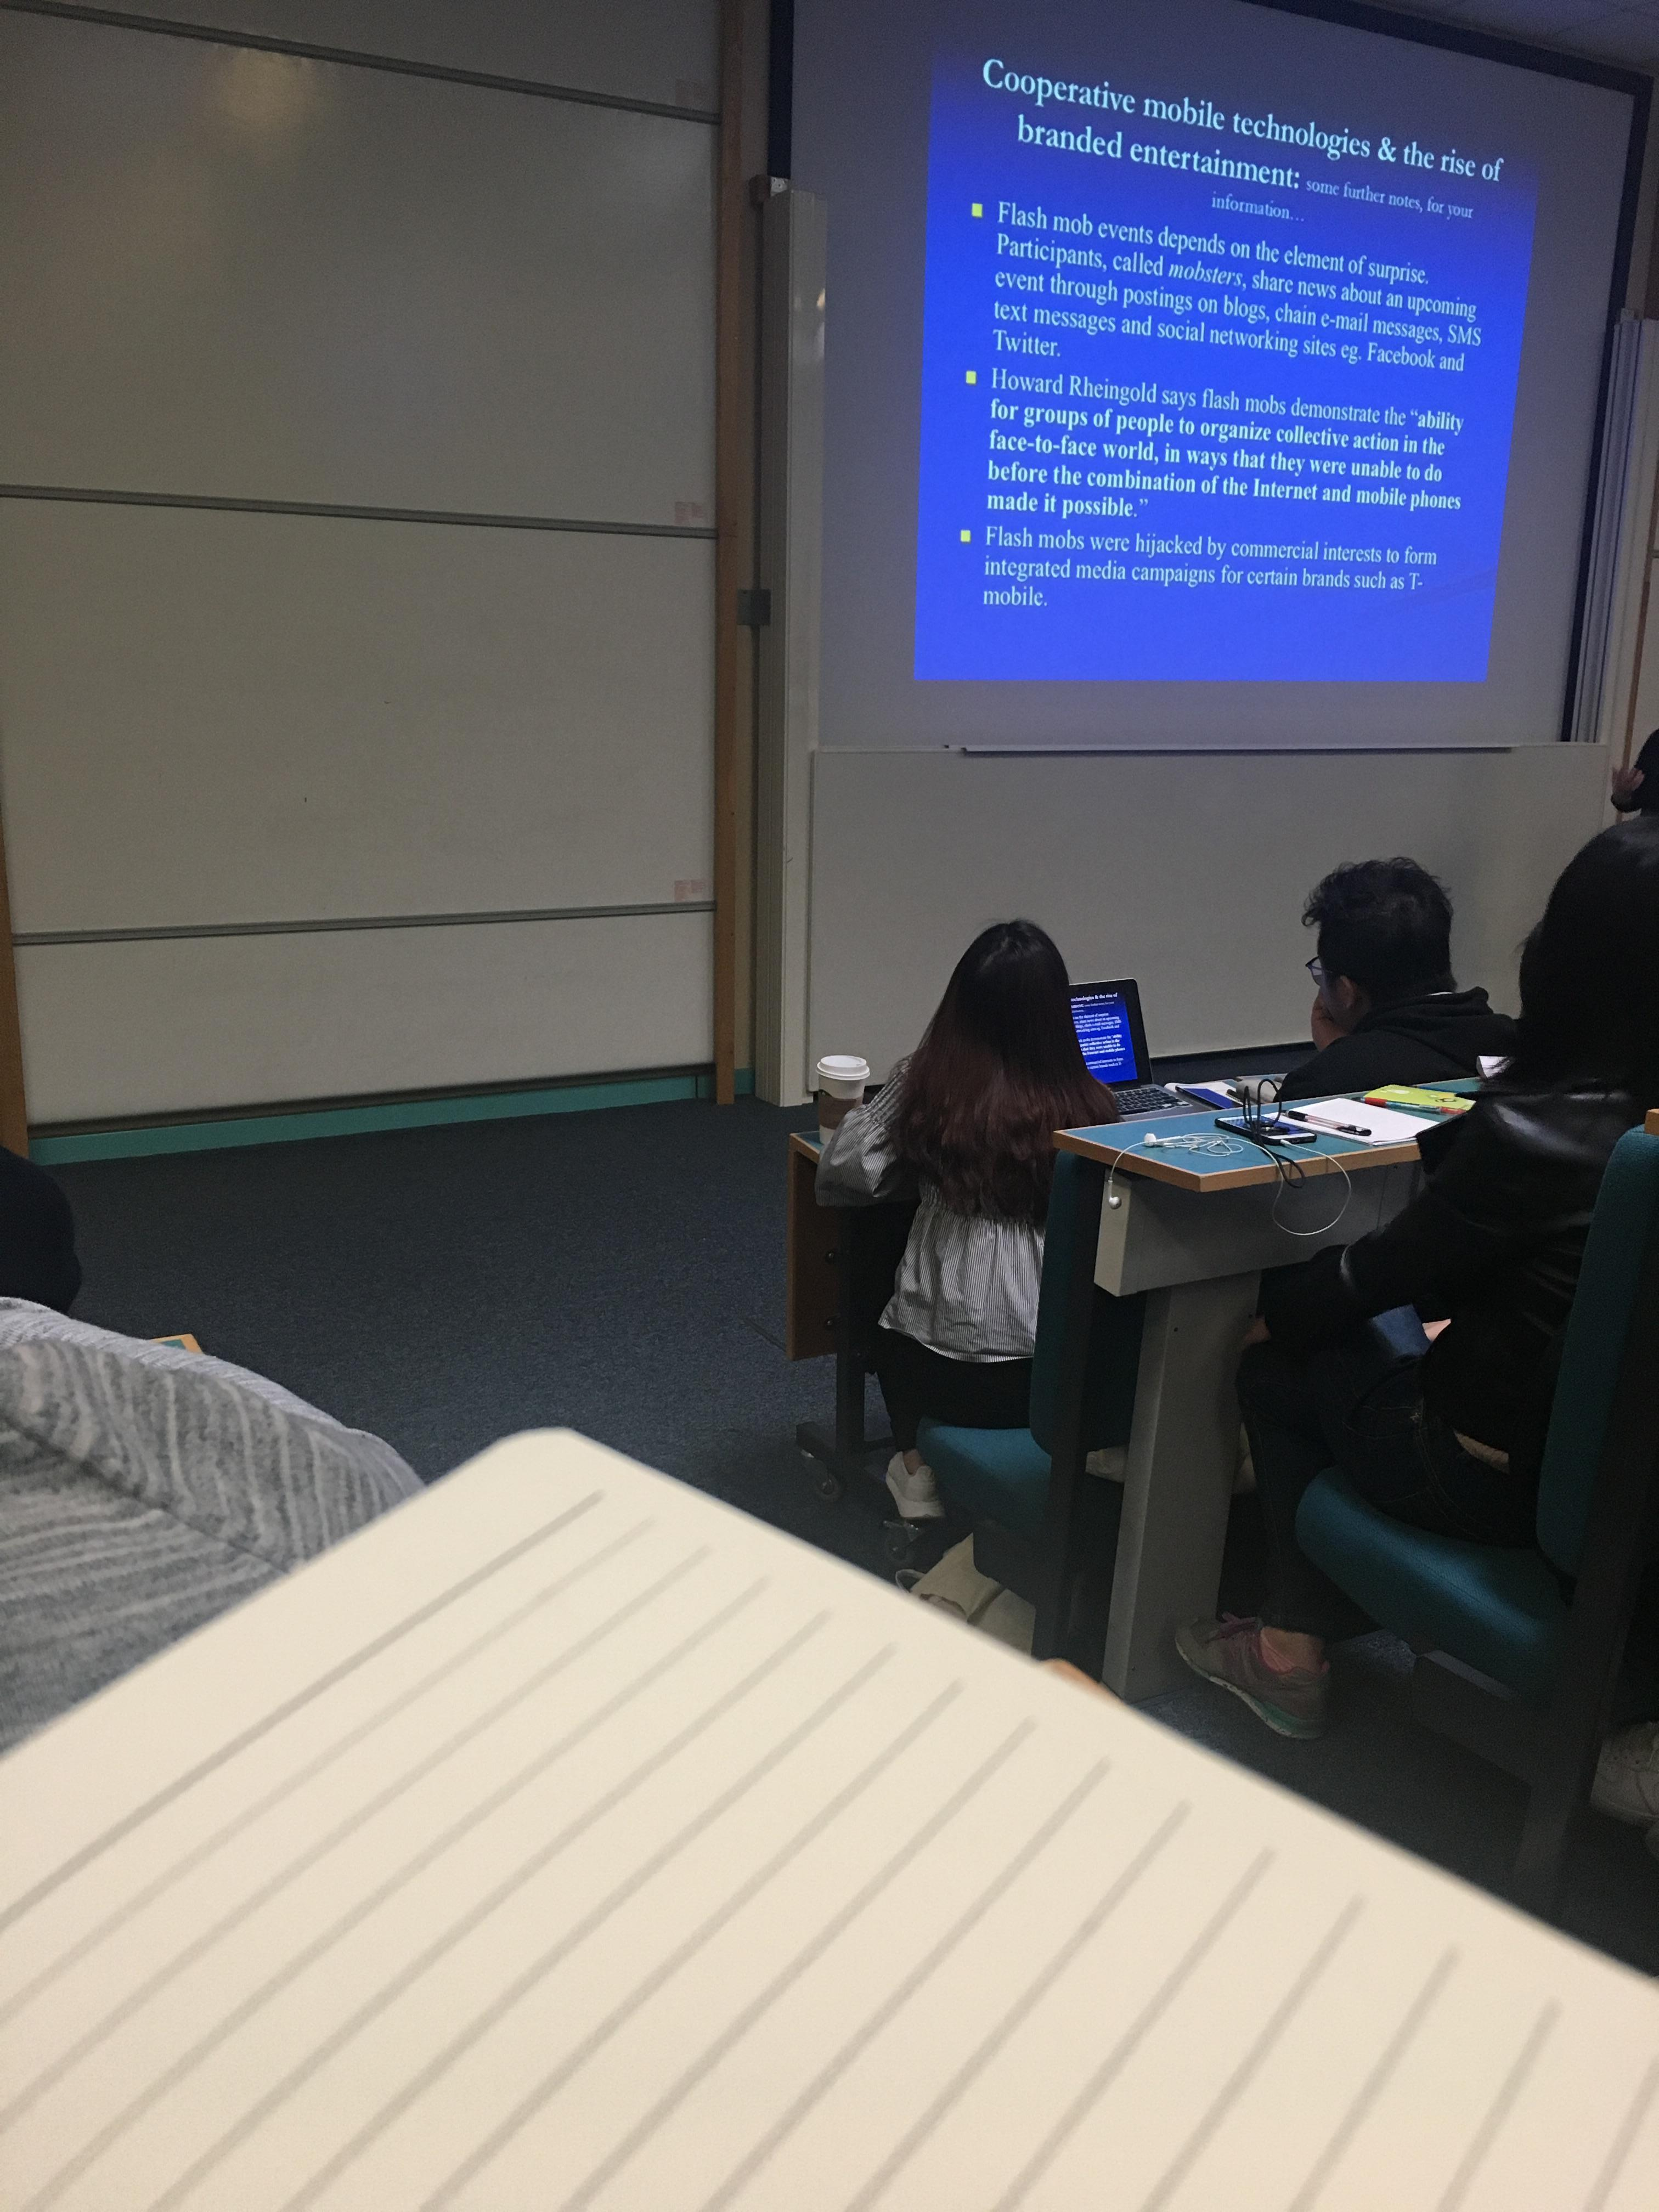 Lectures never change